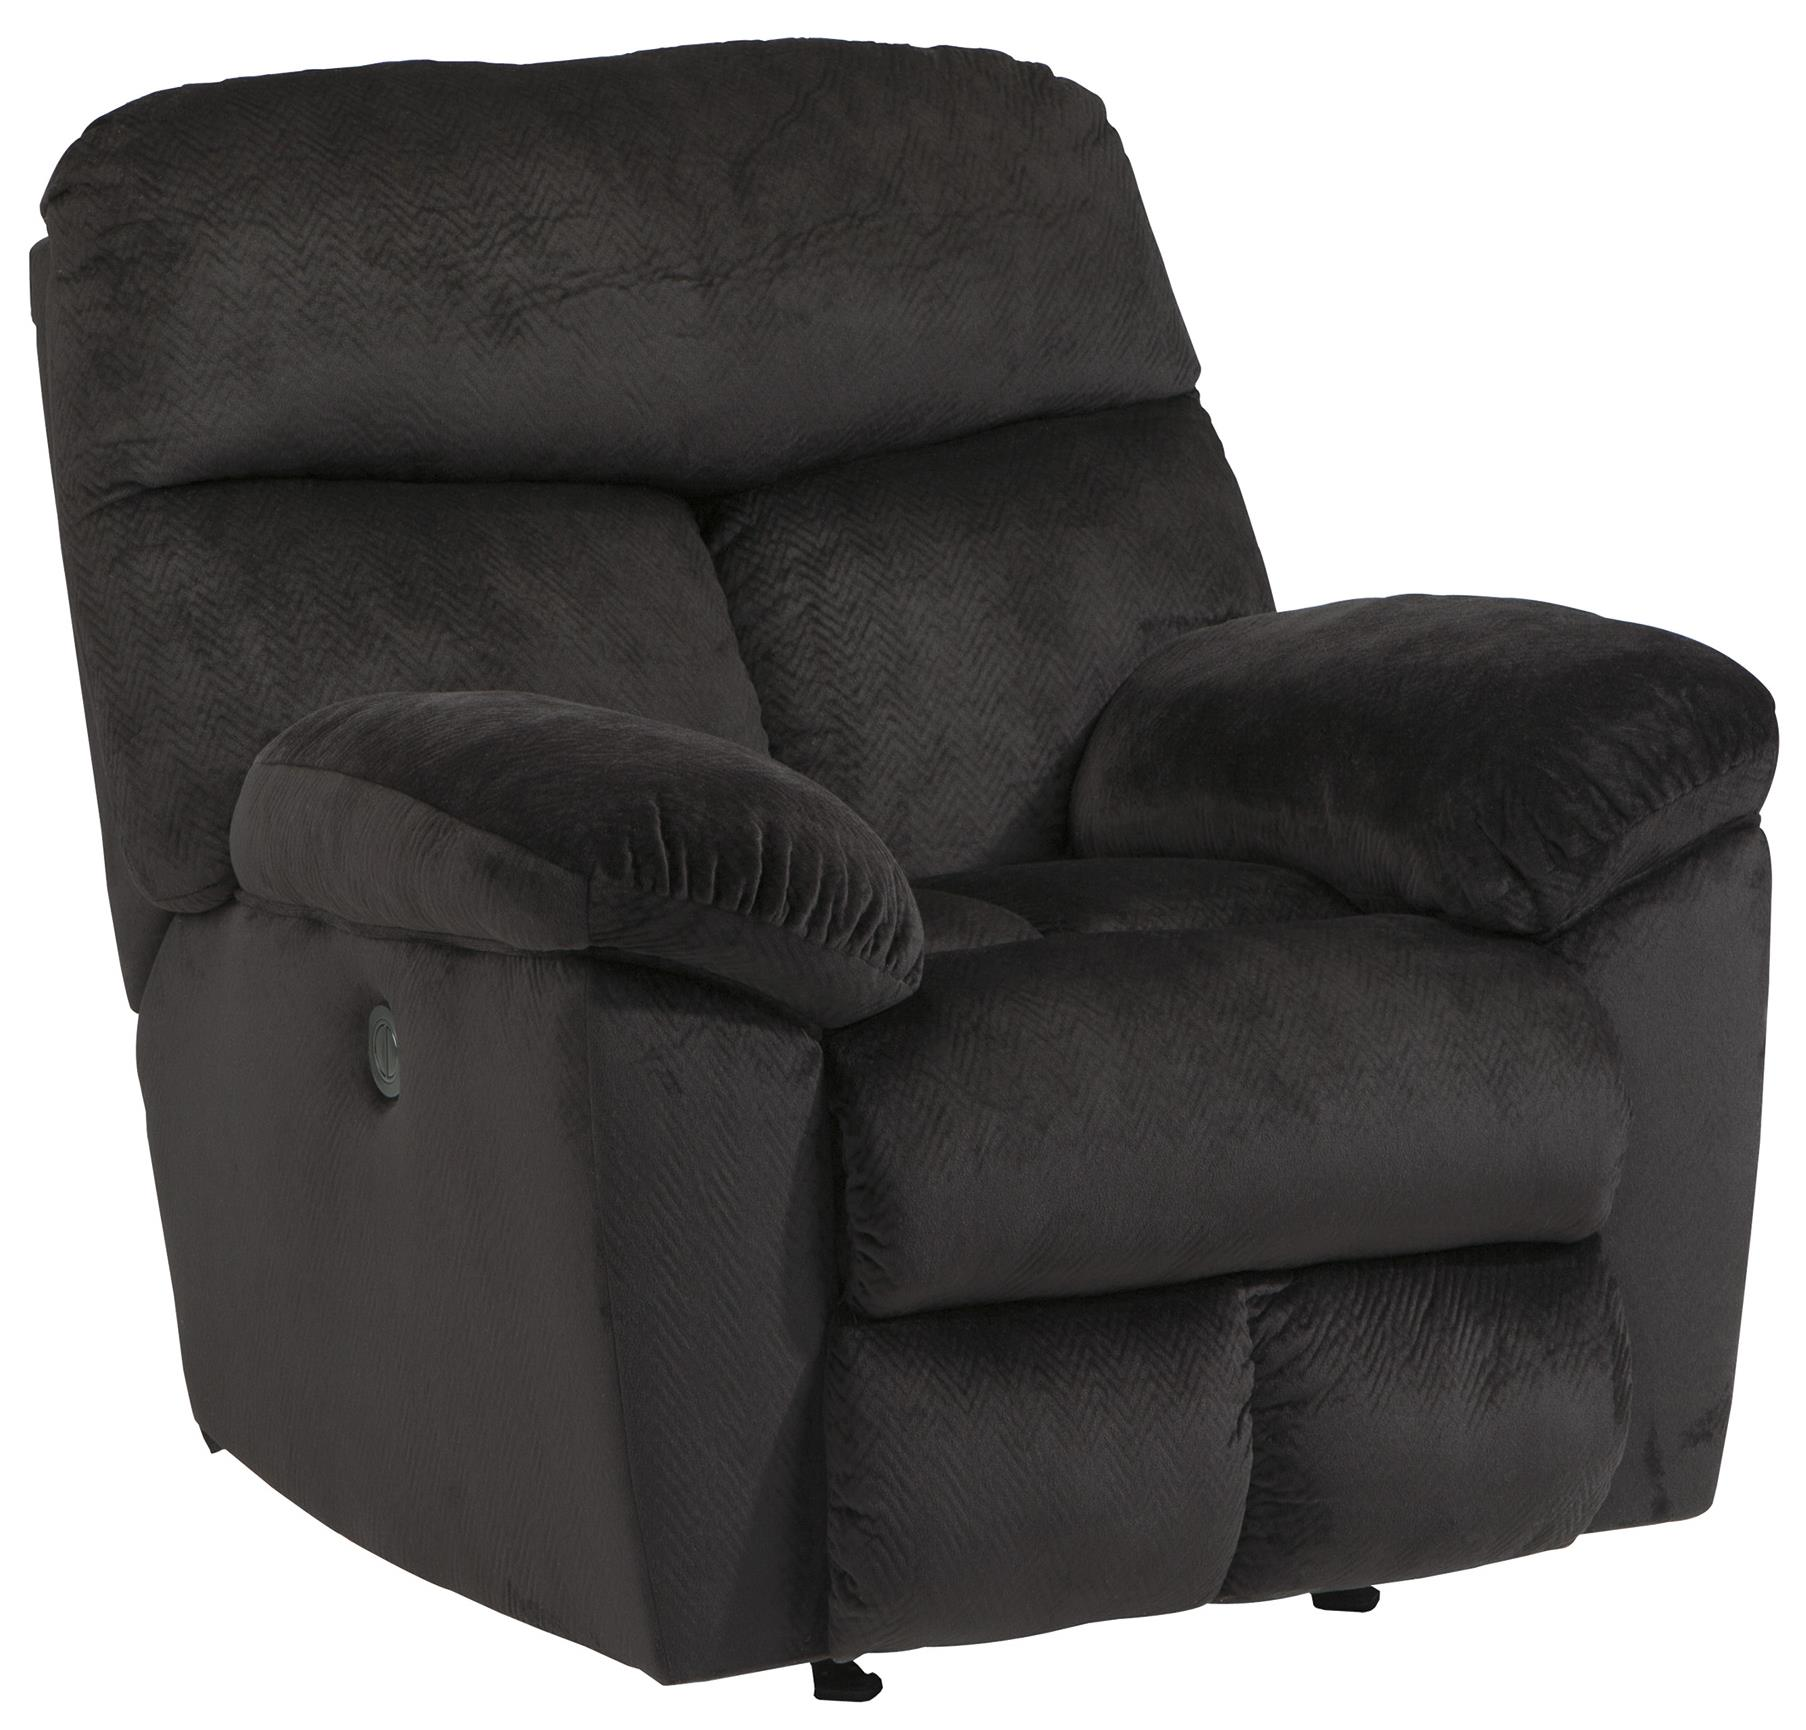 Signature Design by Ashley Saul Rocker Recliner - Item Number: 2230125